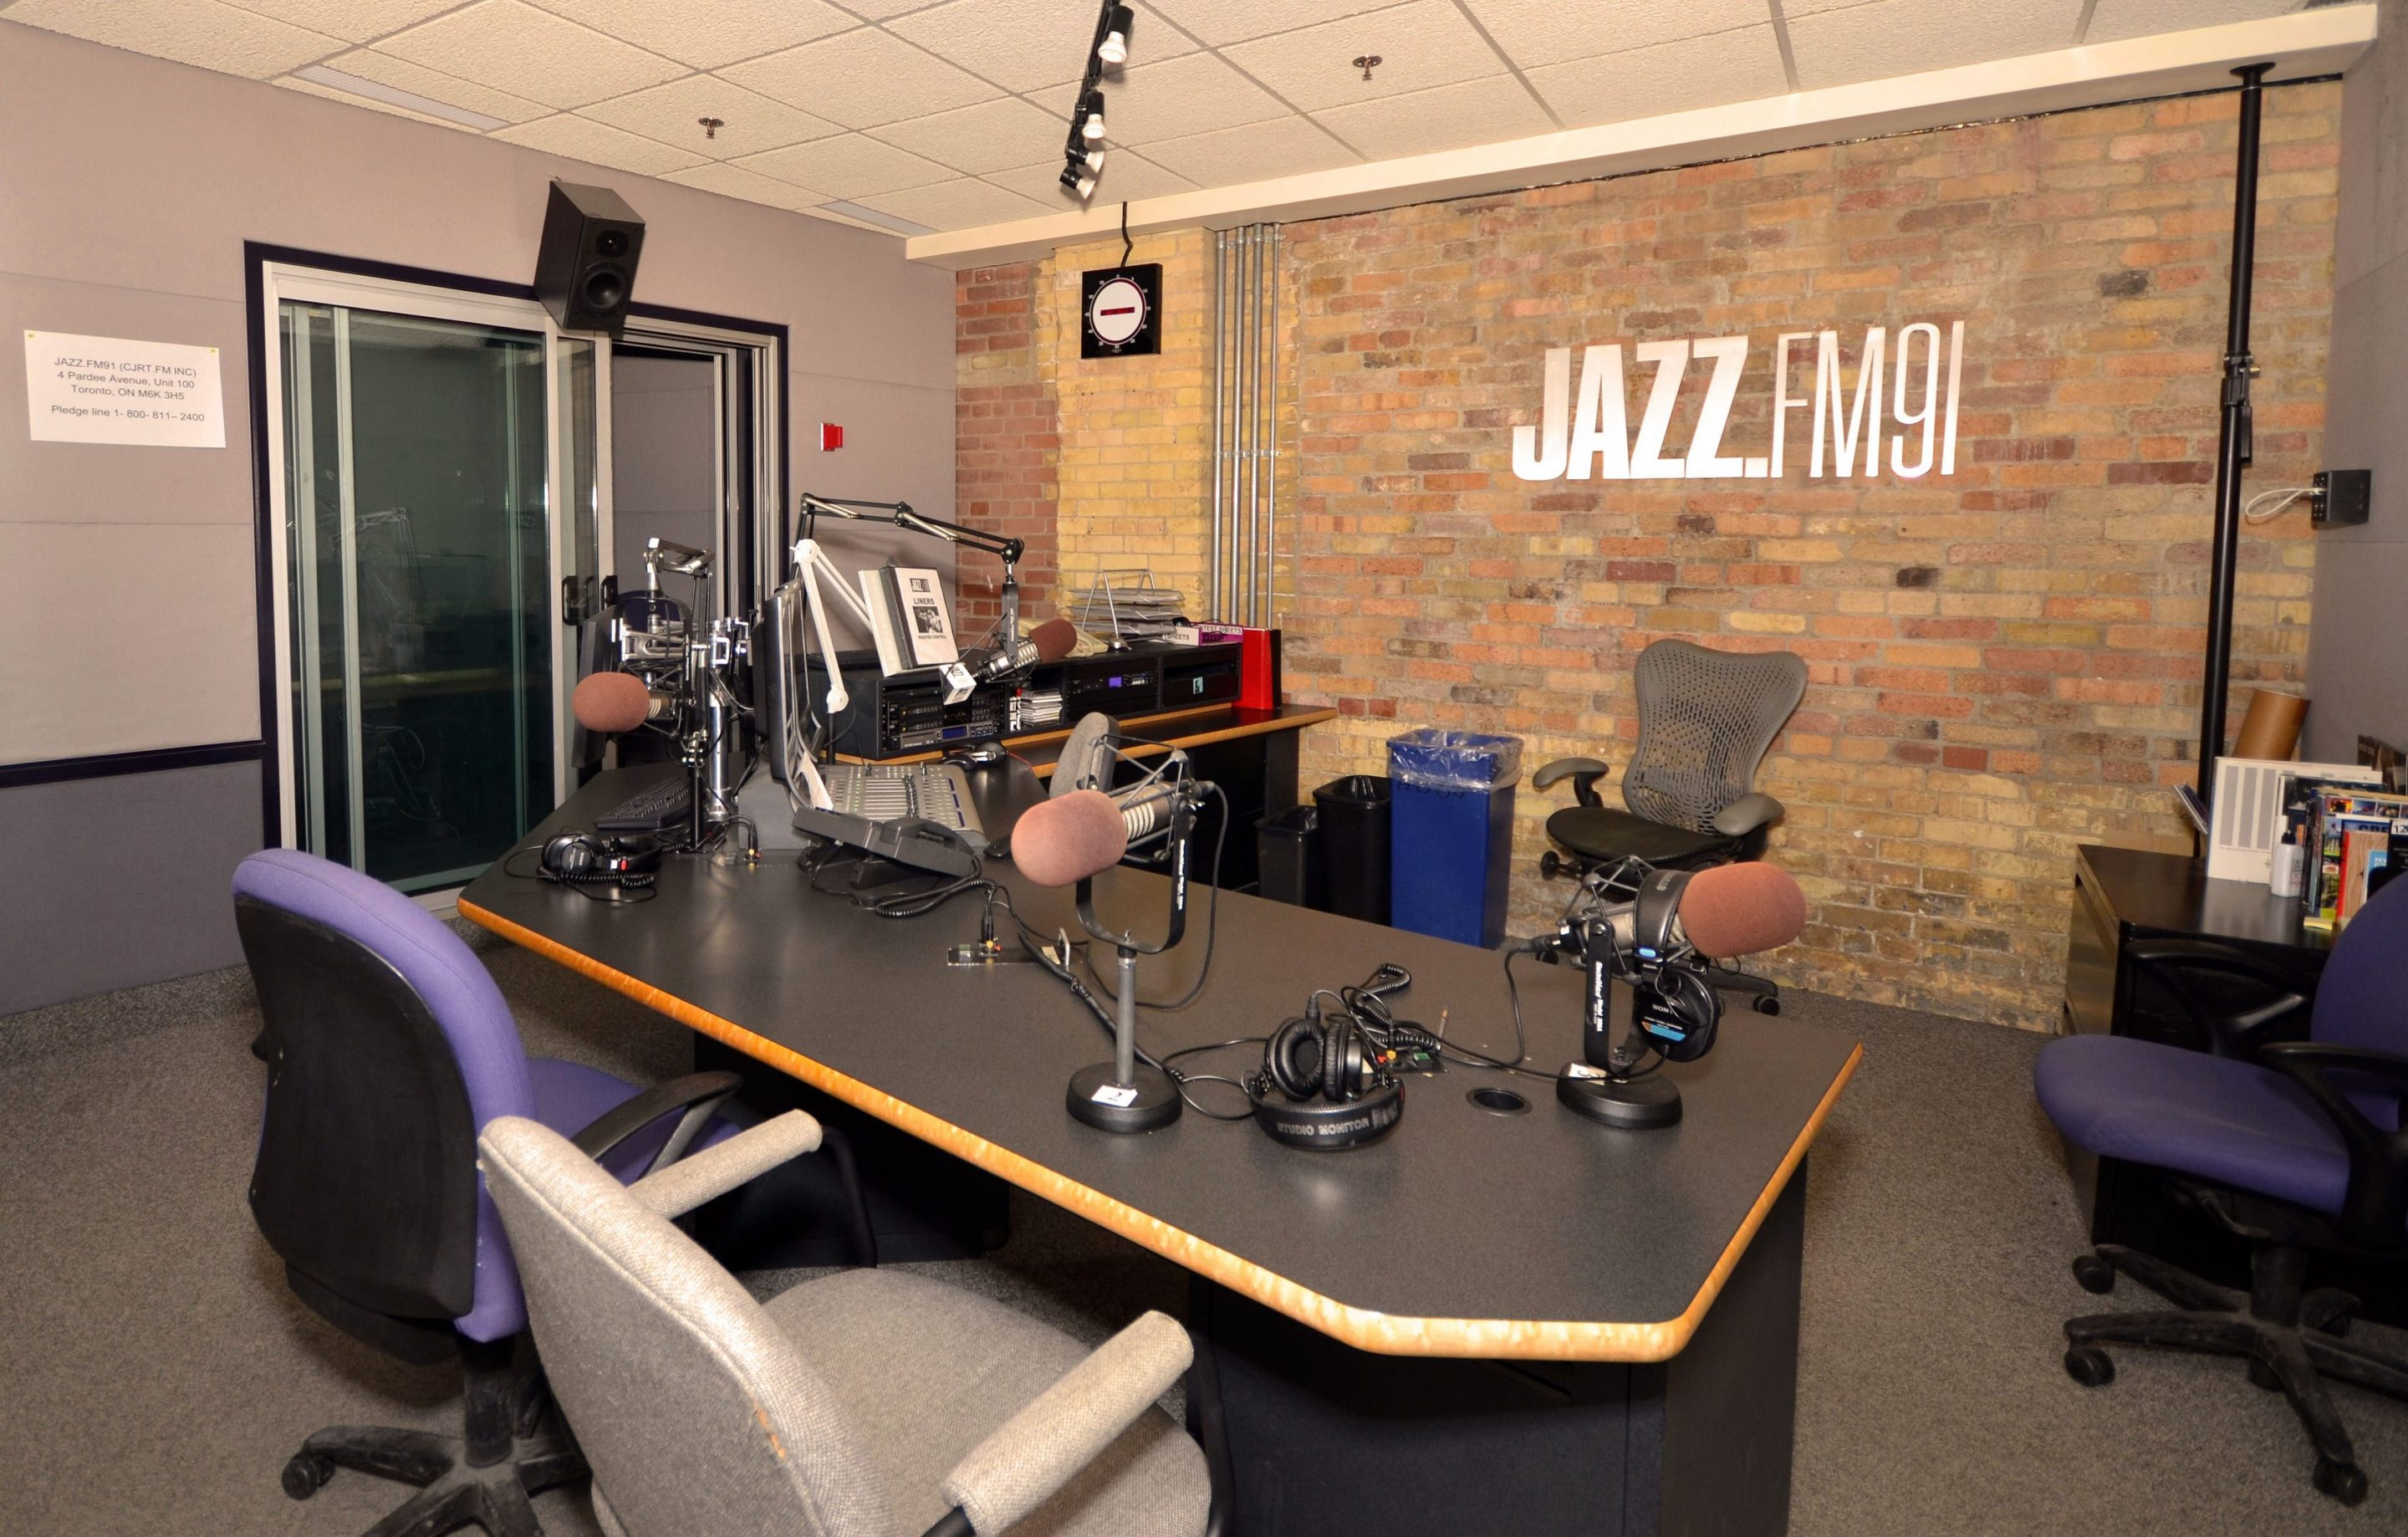 JAZZ.FM91 office interior photographed by Mary Kate Dall